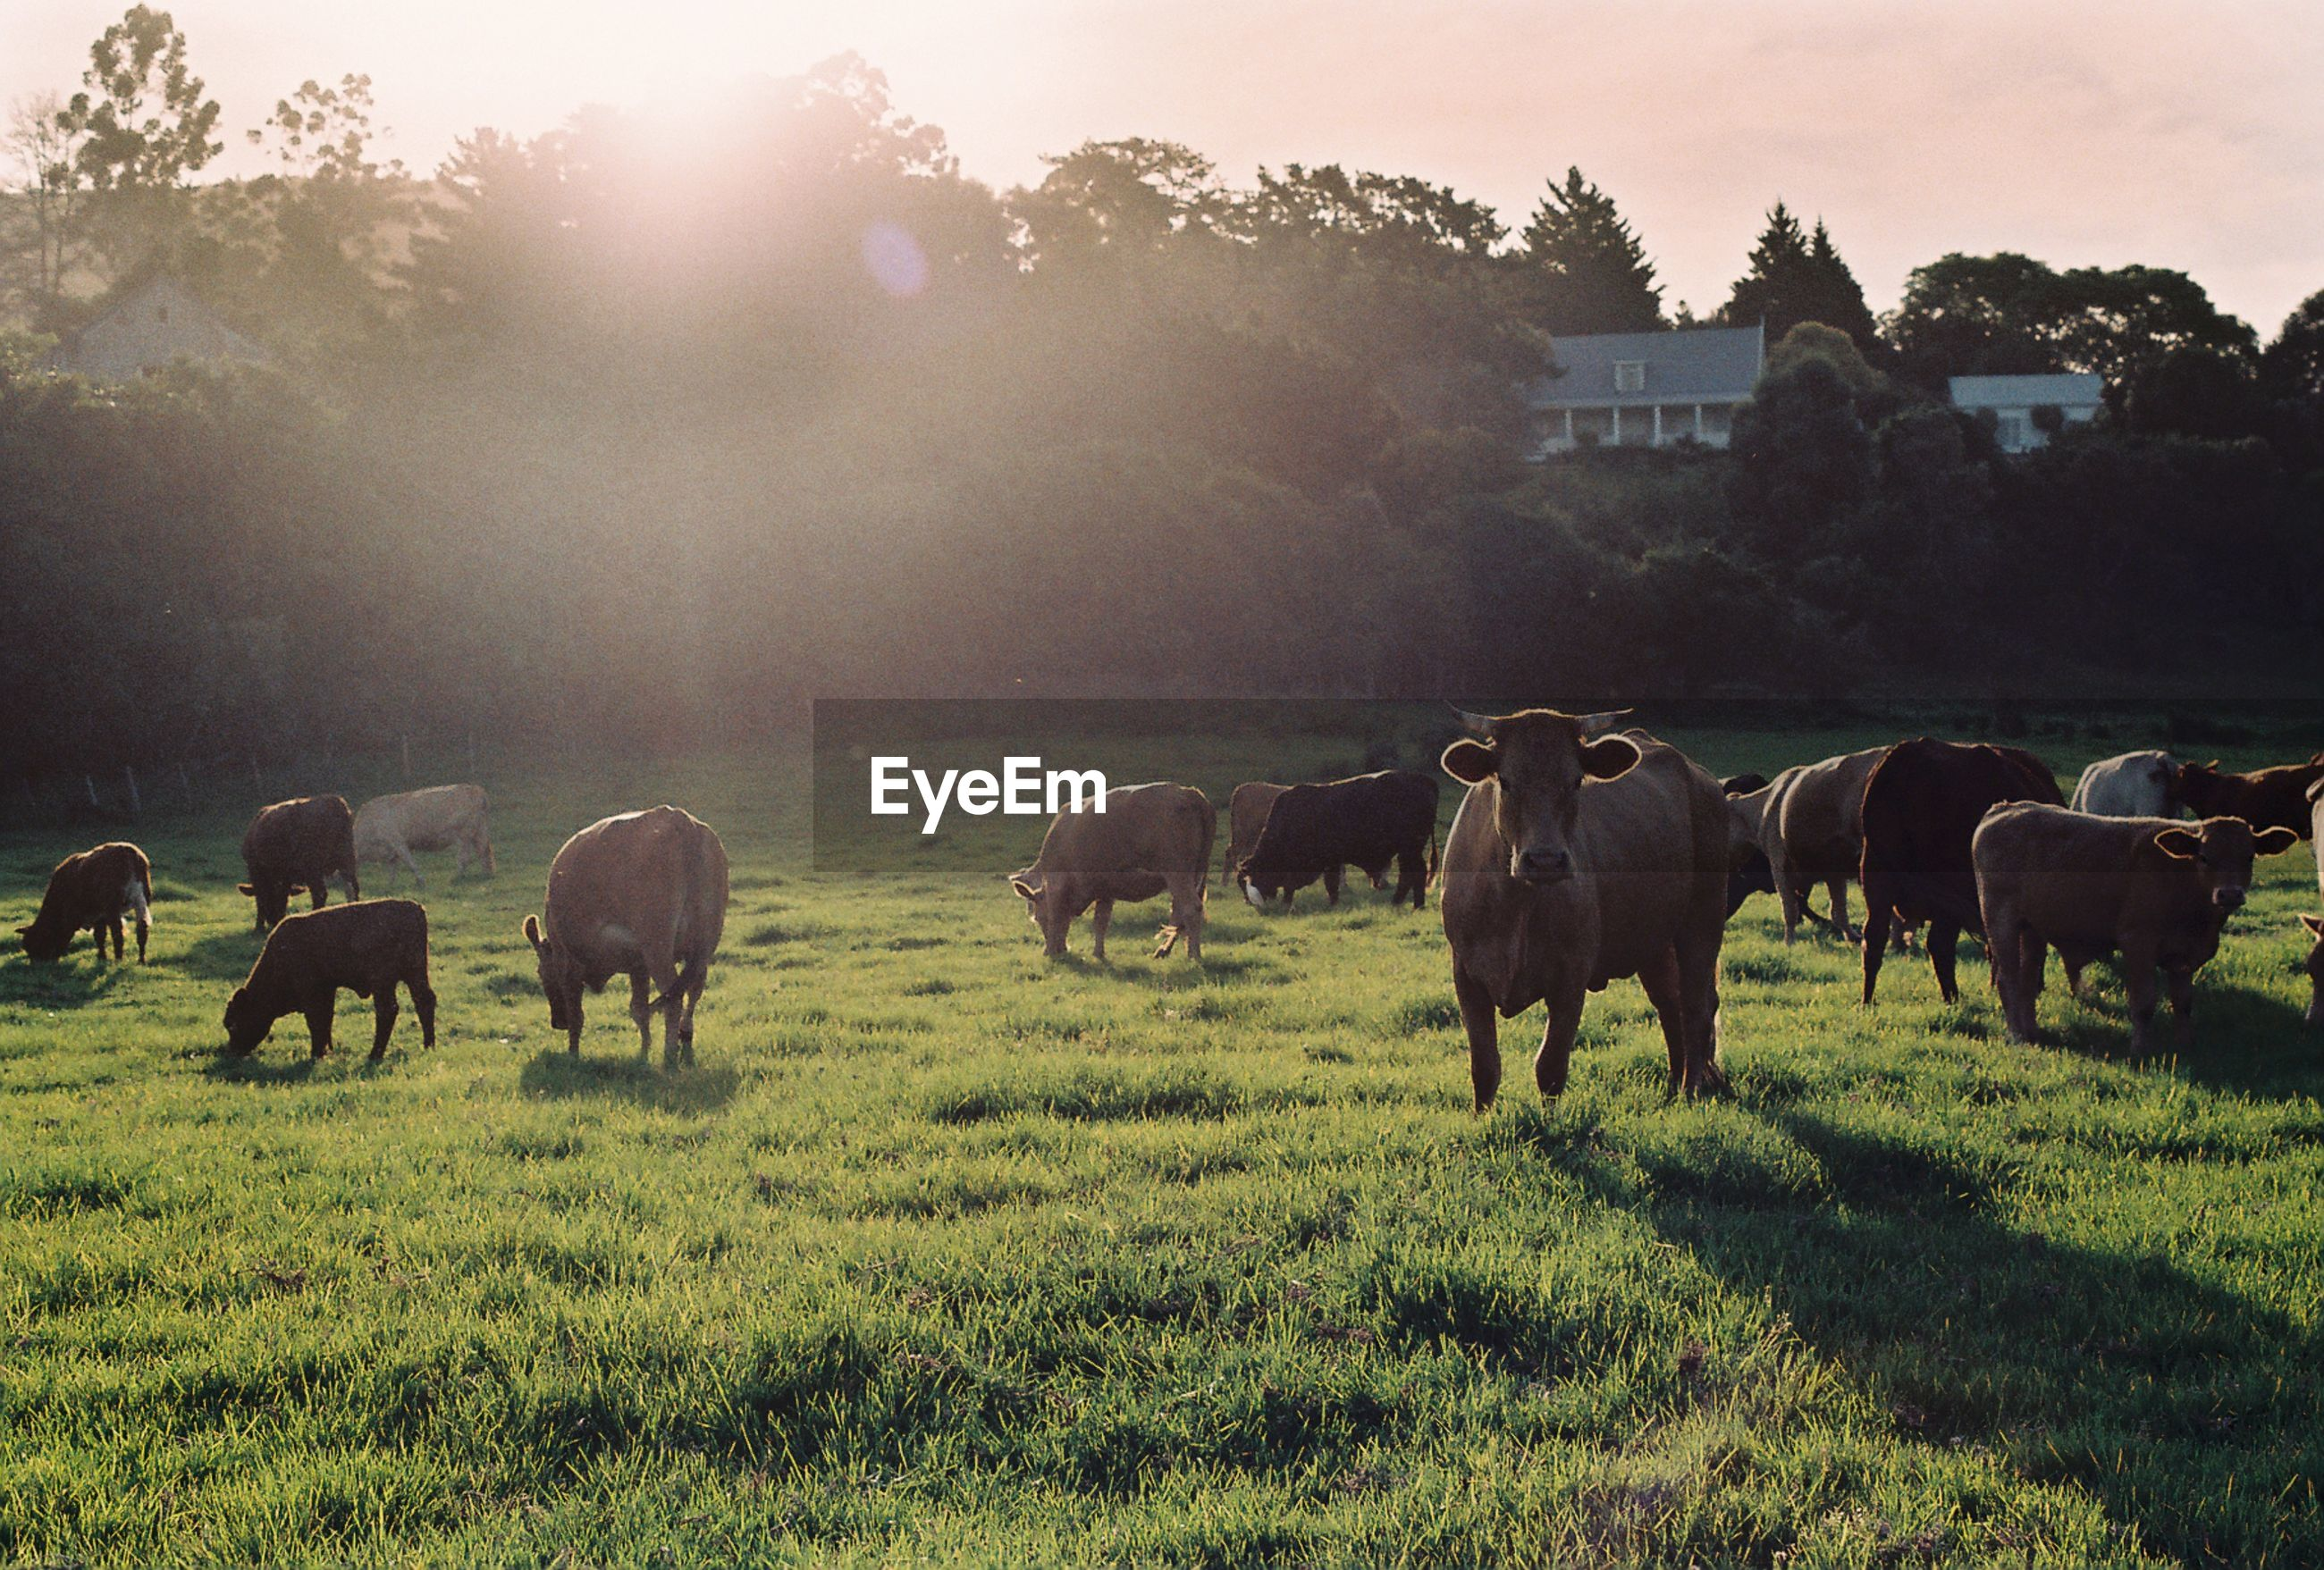 Cows grazing on grassy field during sunny day